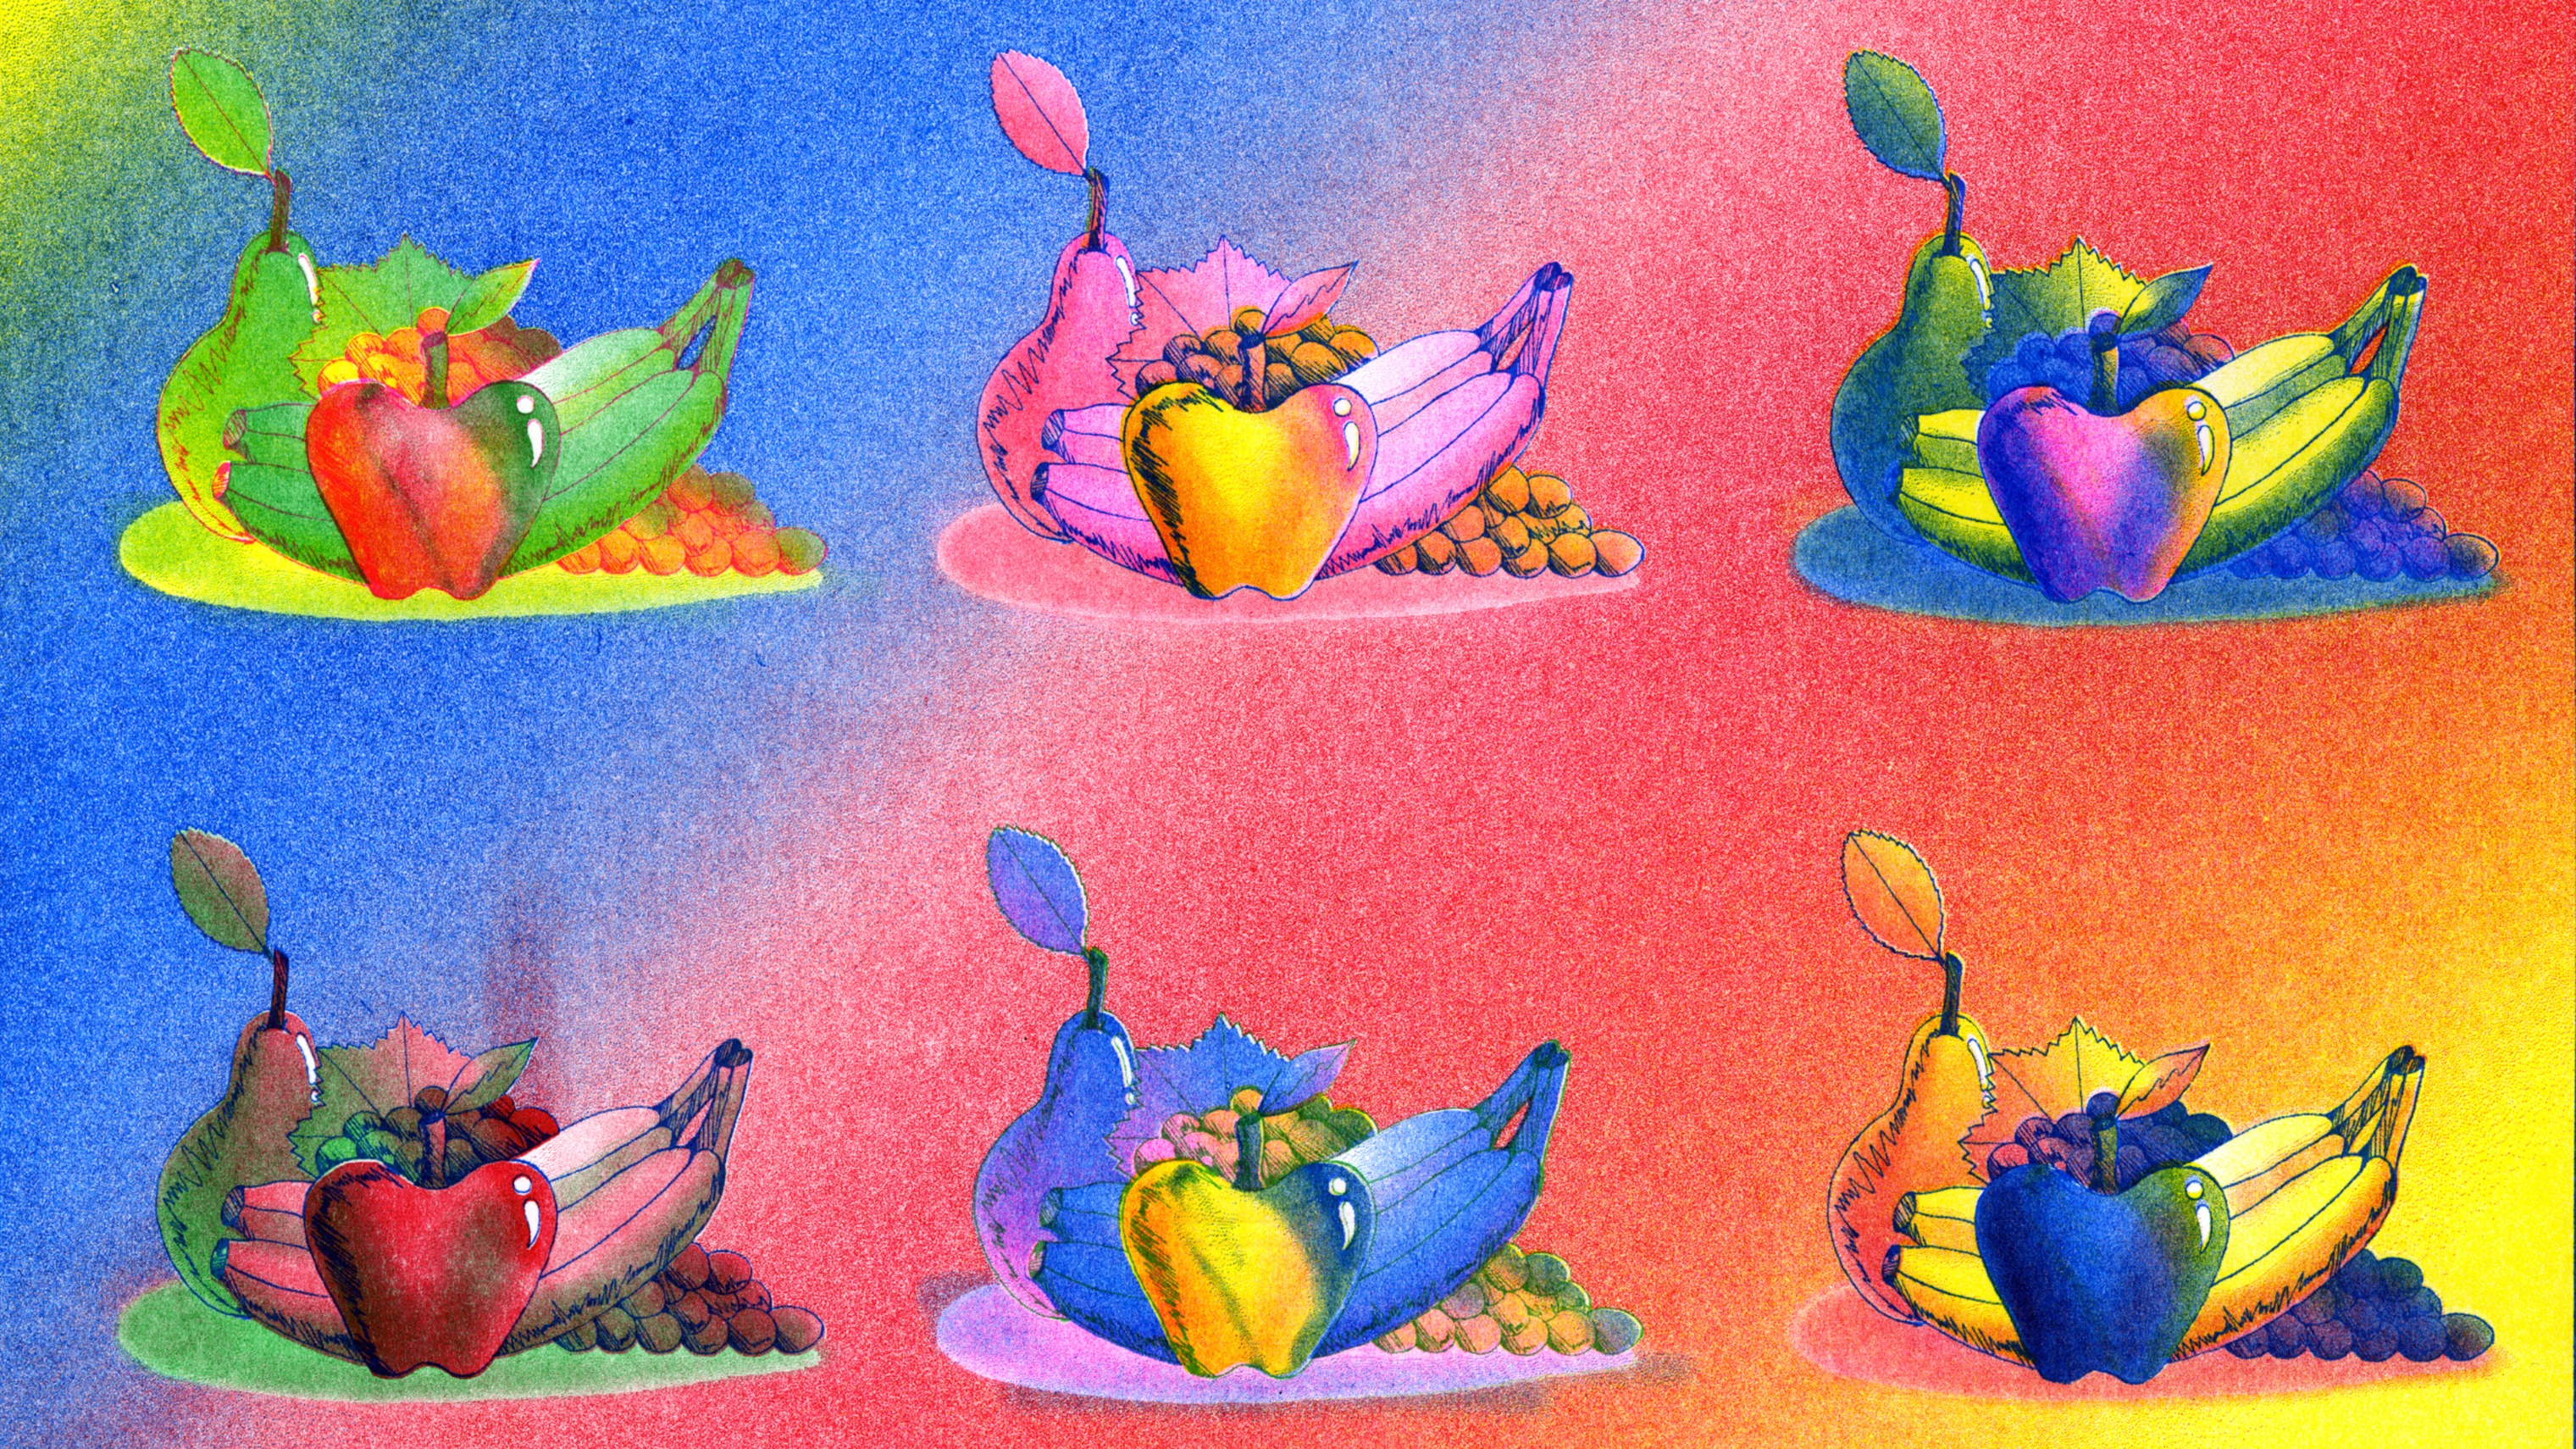 various versions of multicolored illustration of fruit arrangements.